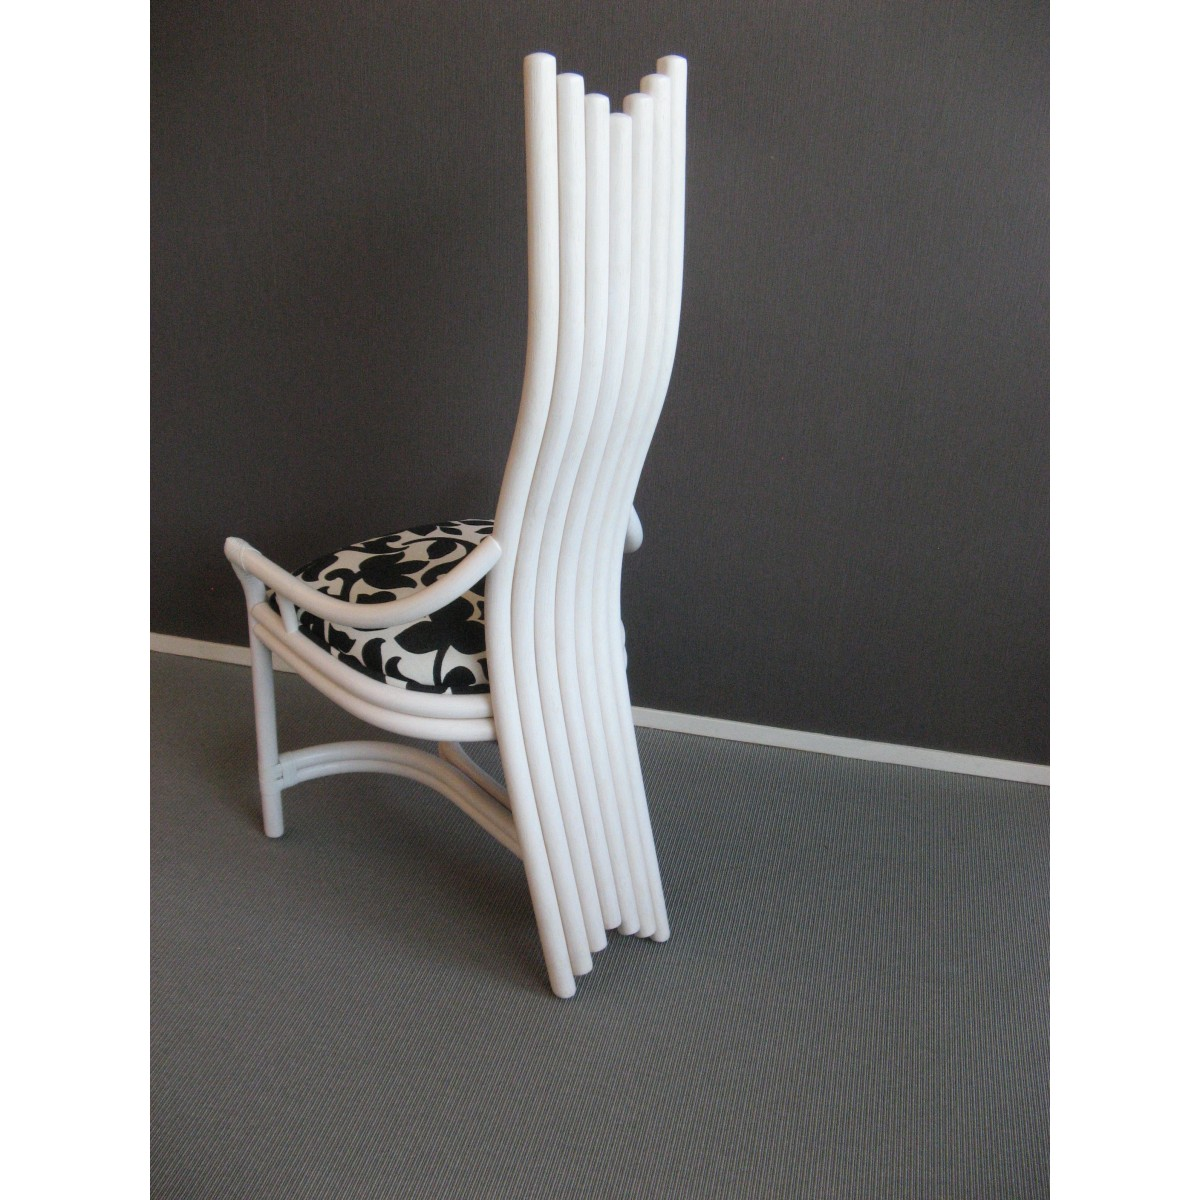 Chaise en rotin coloris design for Chaise rotin design